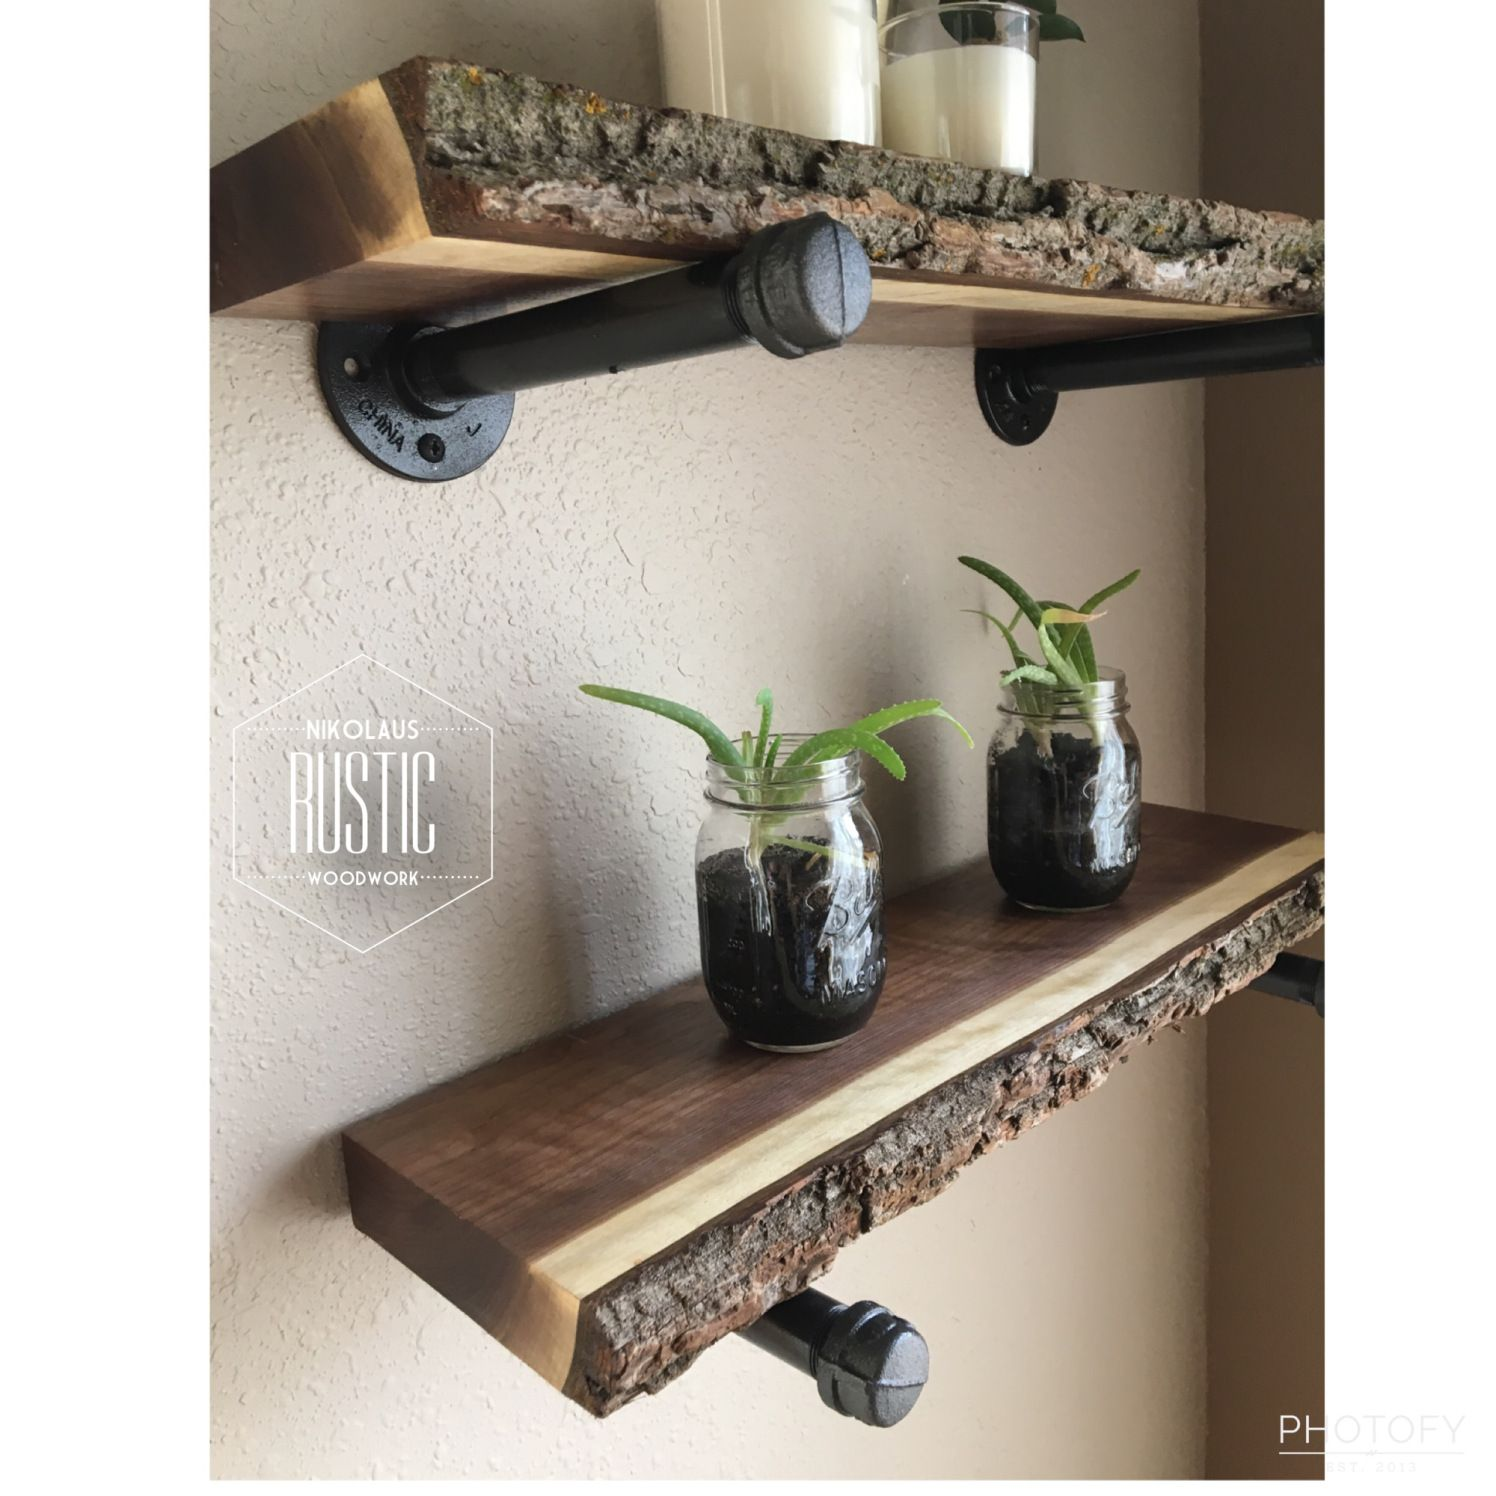 Black Walnut Live Edge Shelves From #nikolausrusticwoodwork